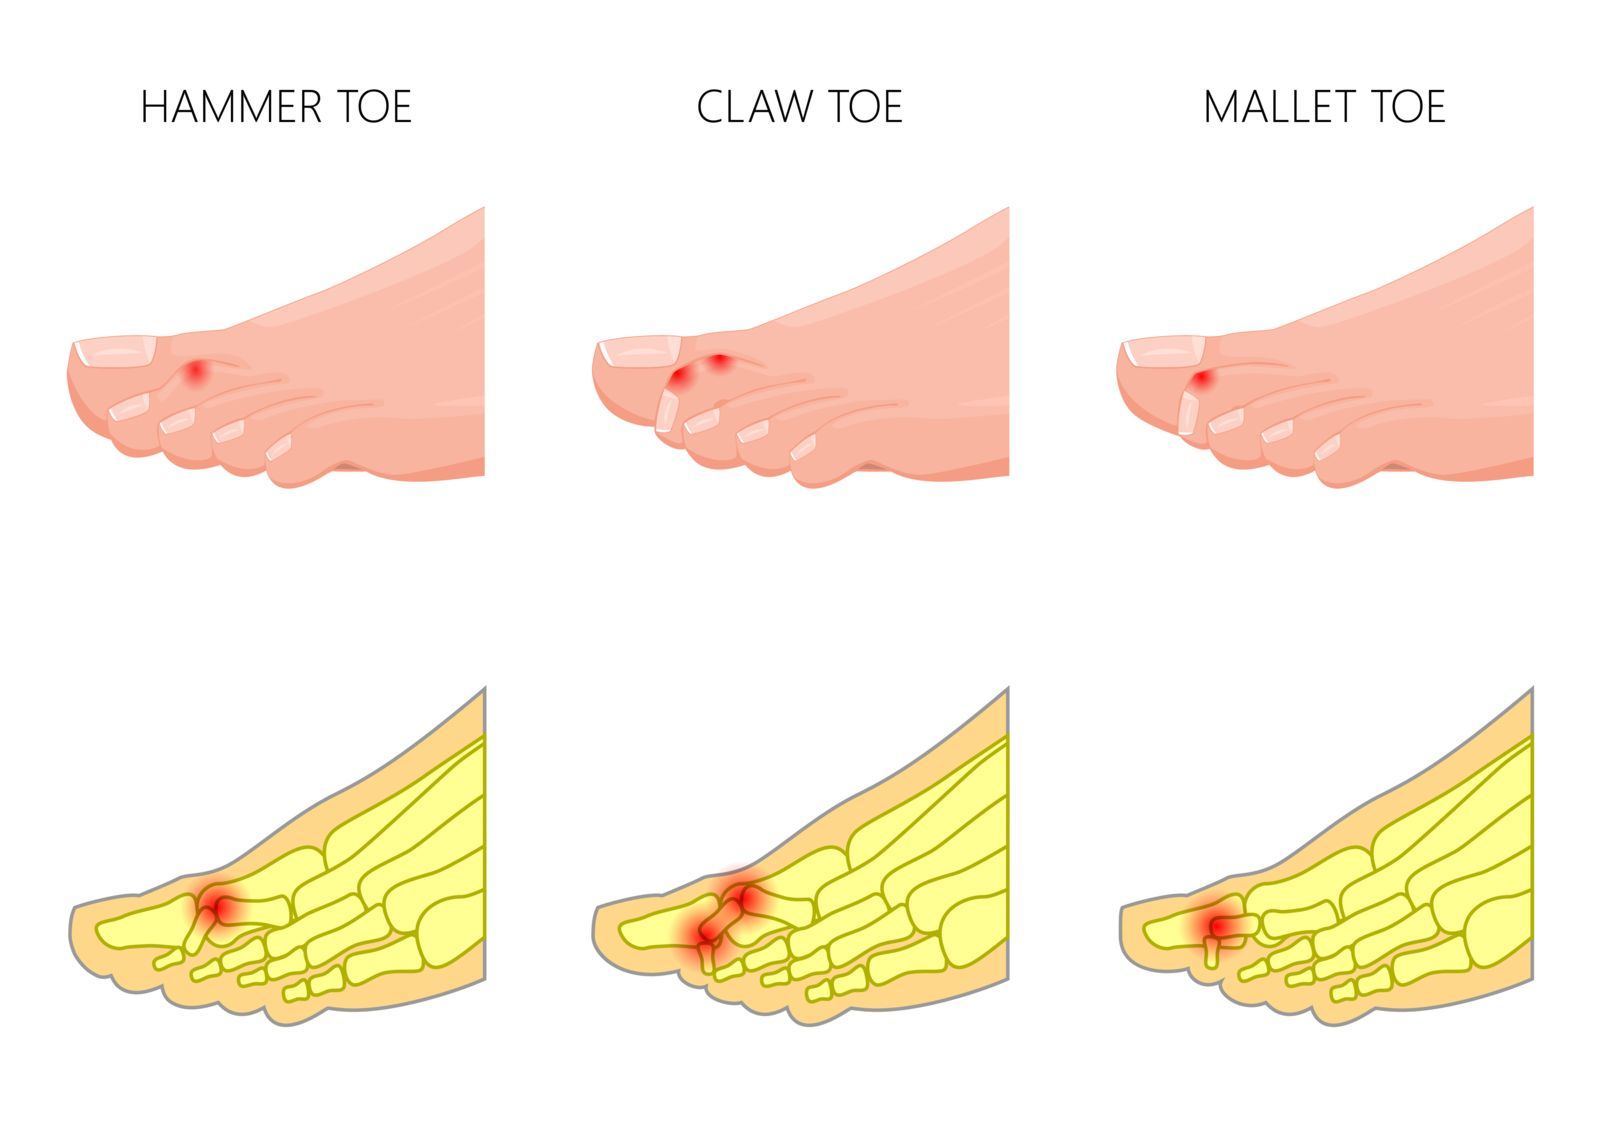 Houston podiatrist treats hammer toe, mallet toe, and claw toe